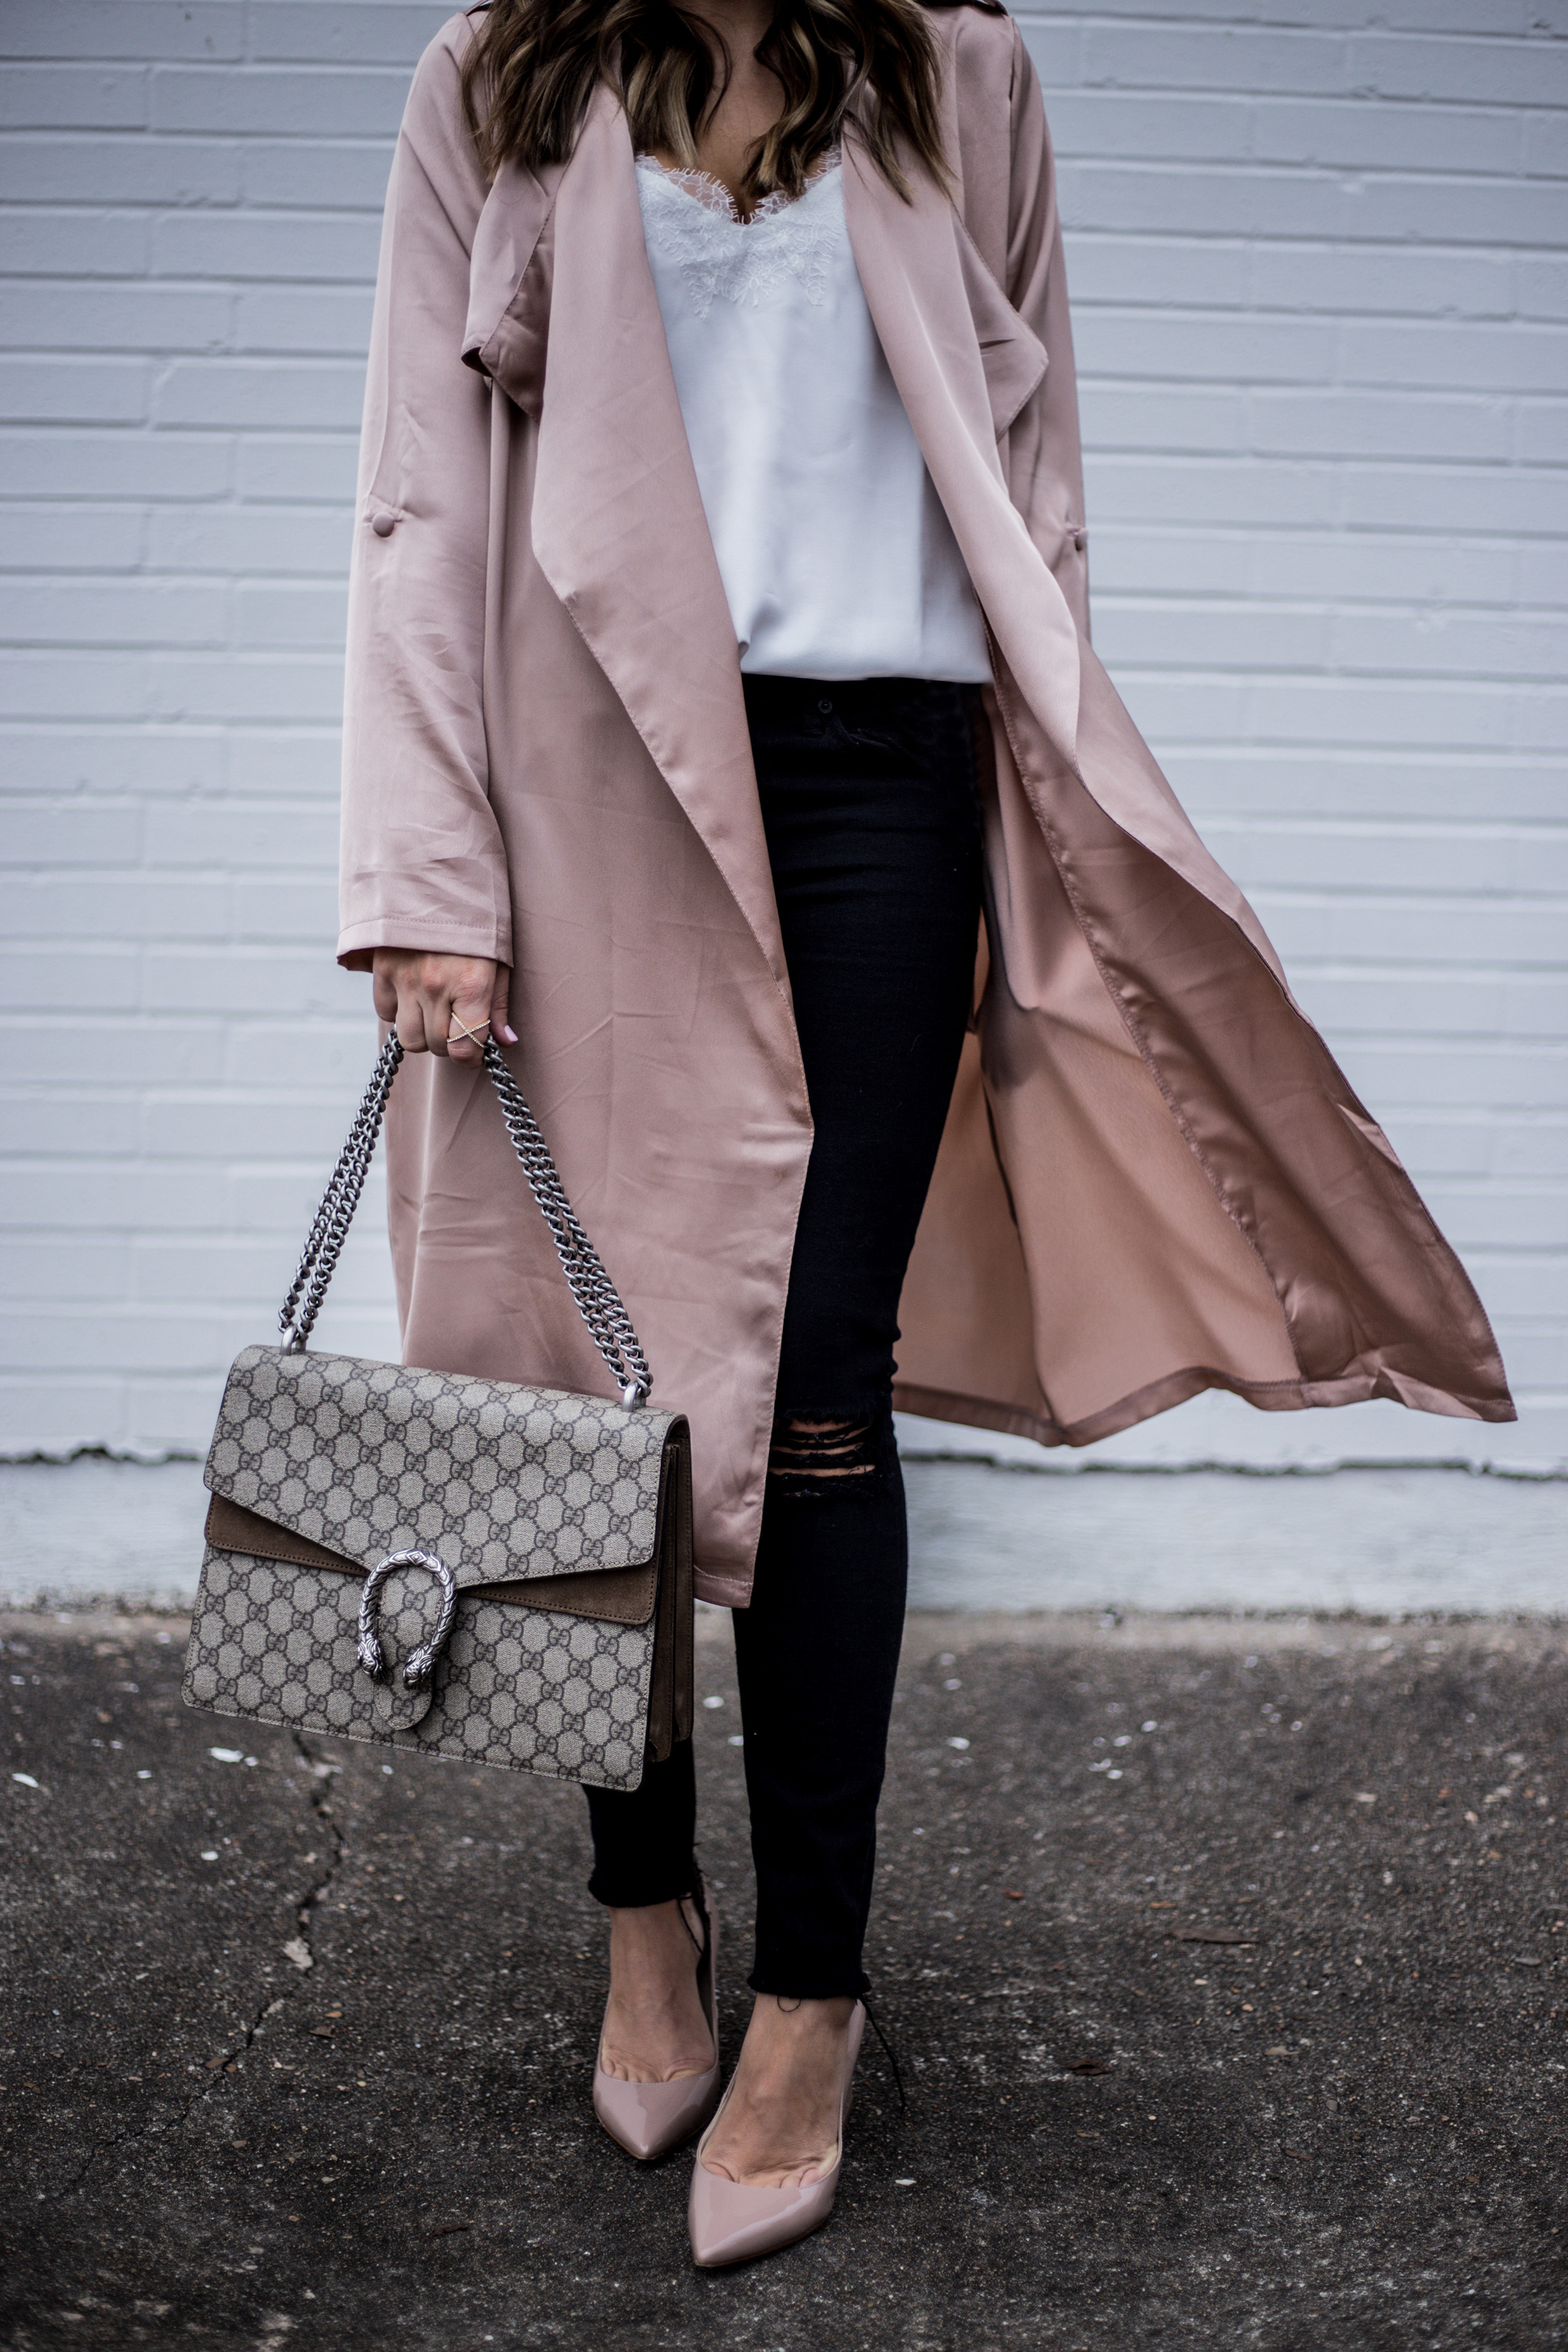 Lifestyle blogger Tiffany Jais of Flaunt and Center wearing a satin duster jacket with skinny jeans  